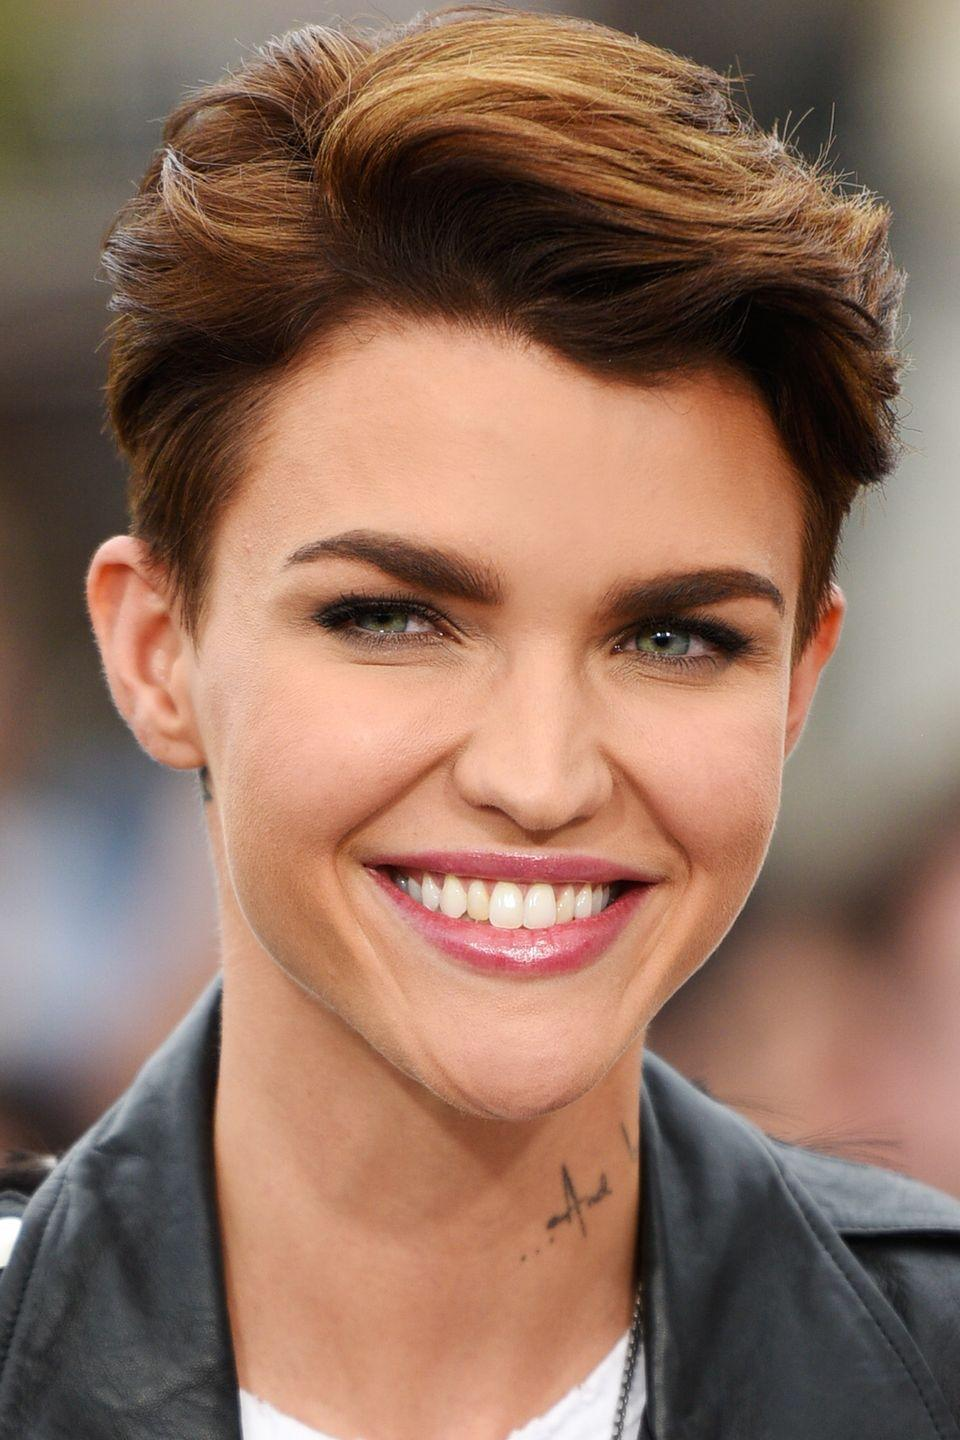 <p>Actress Ruby Rose adds soft waves to her short hair for some added volume to frame her strong features. </p>